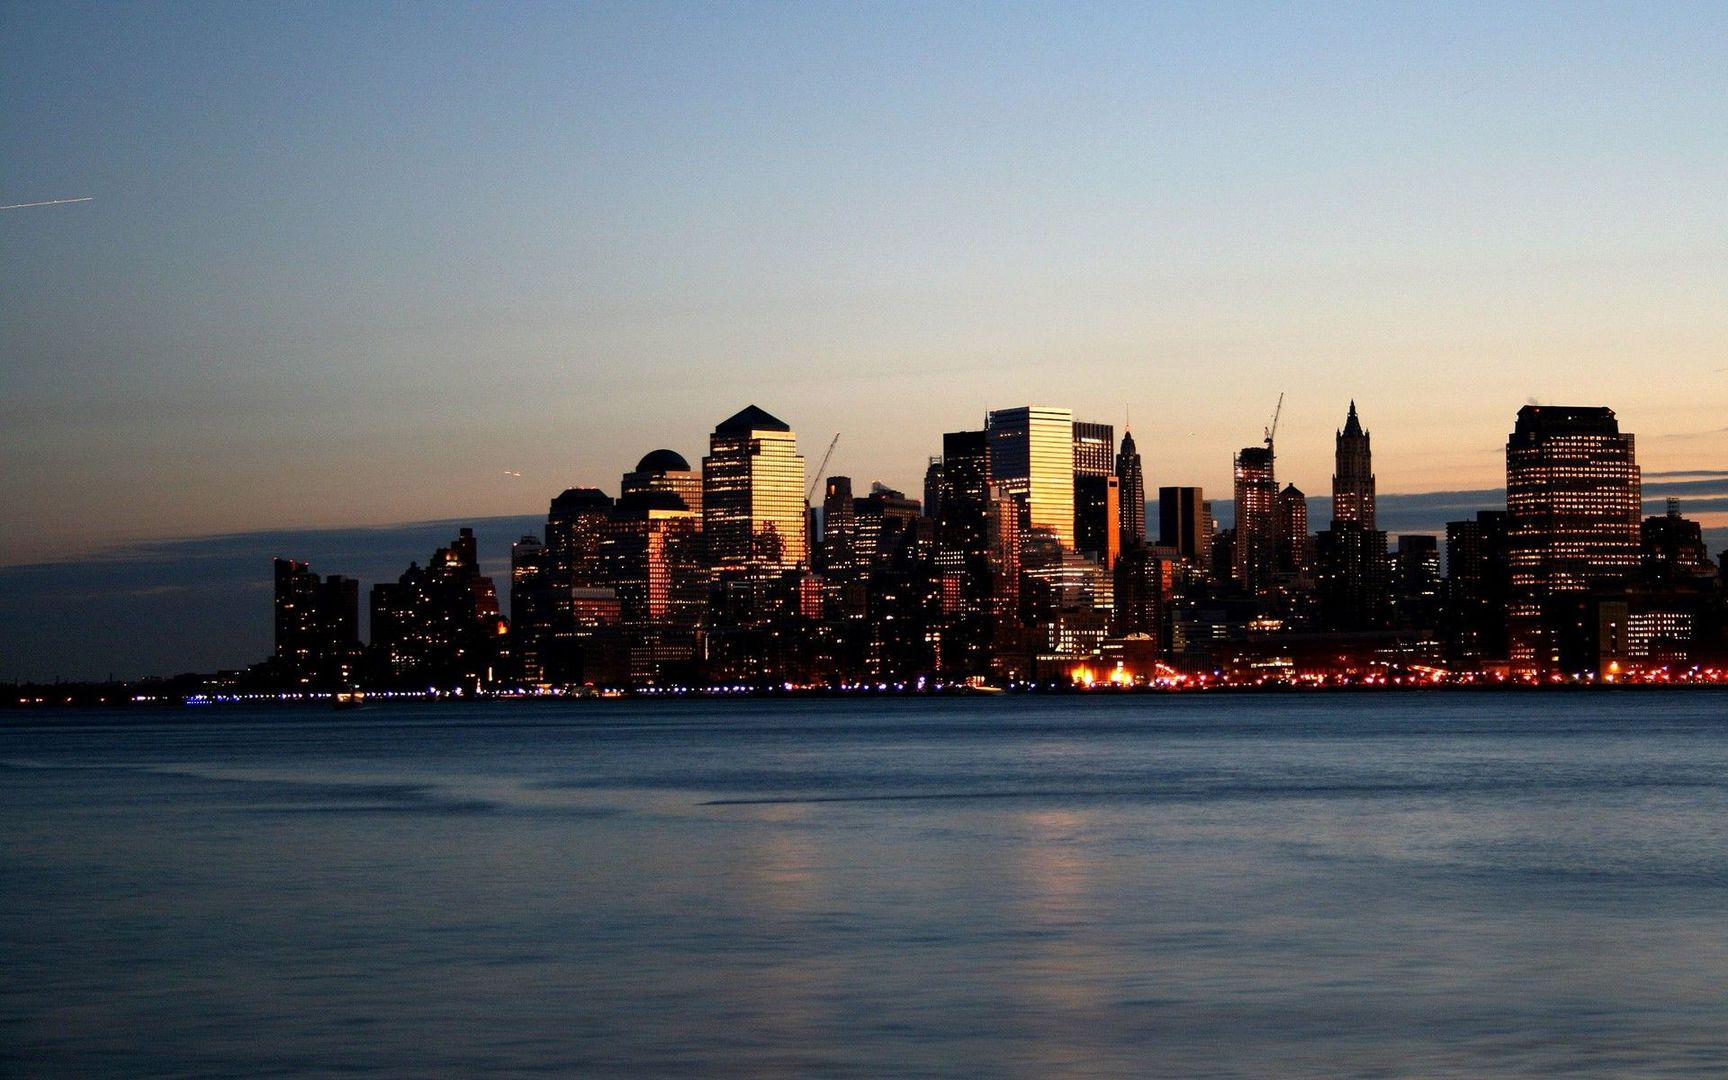 39 chicago skyline pictures wallpaper on wallpapersafari - Chicago skyline wallpaper 1920x1080 ...